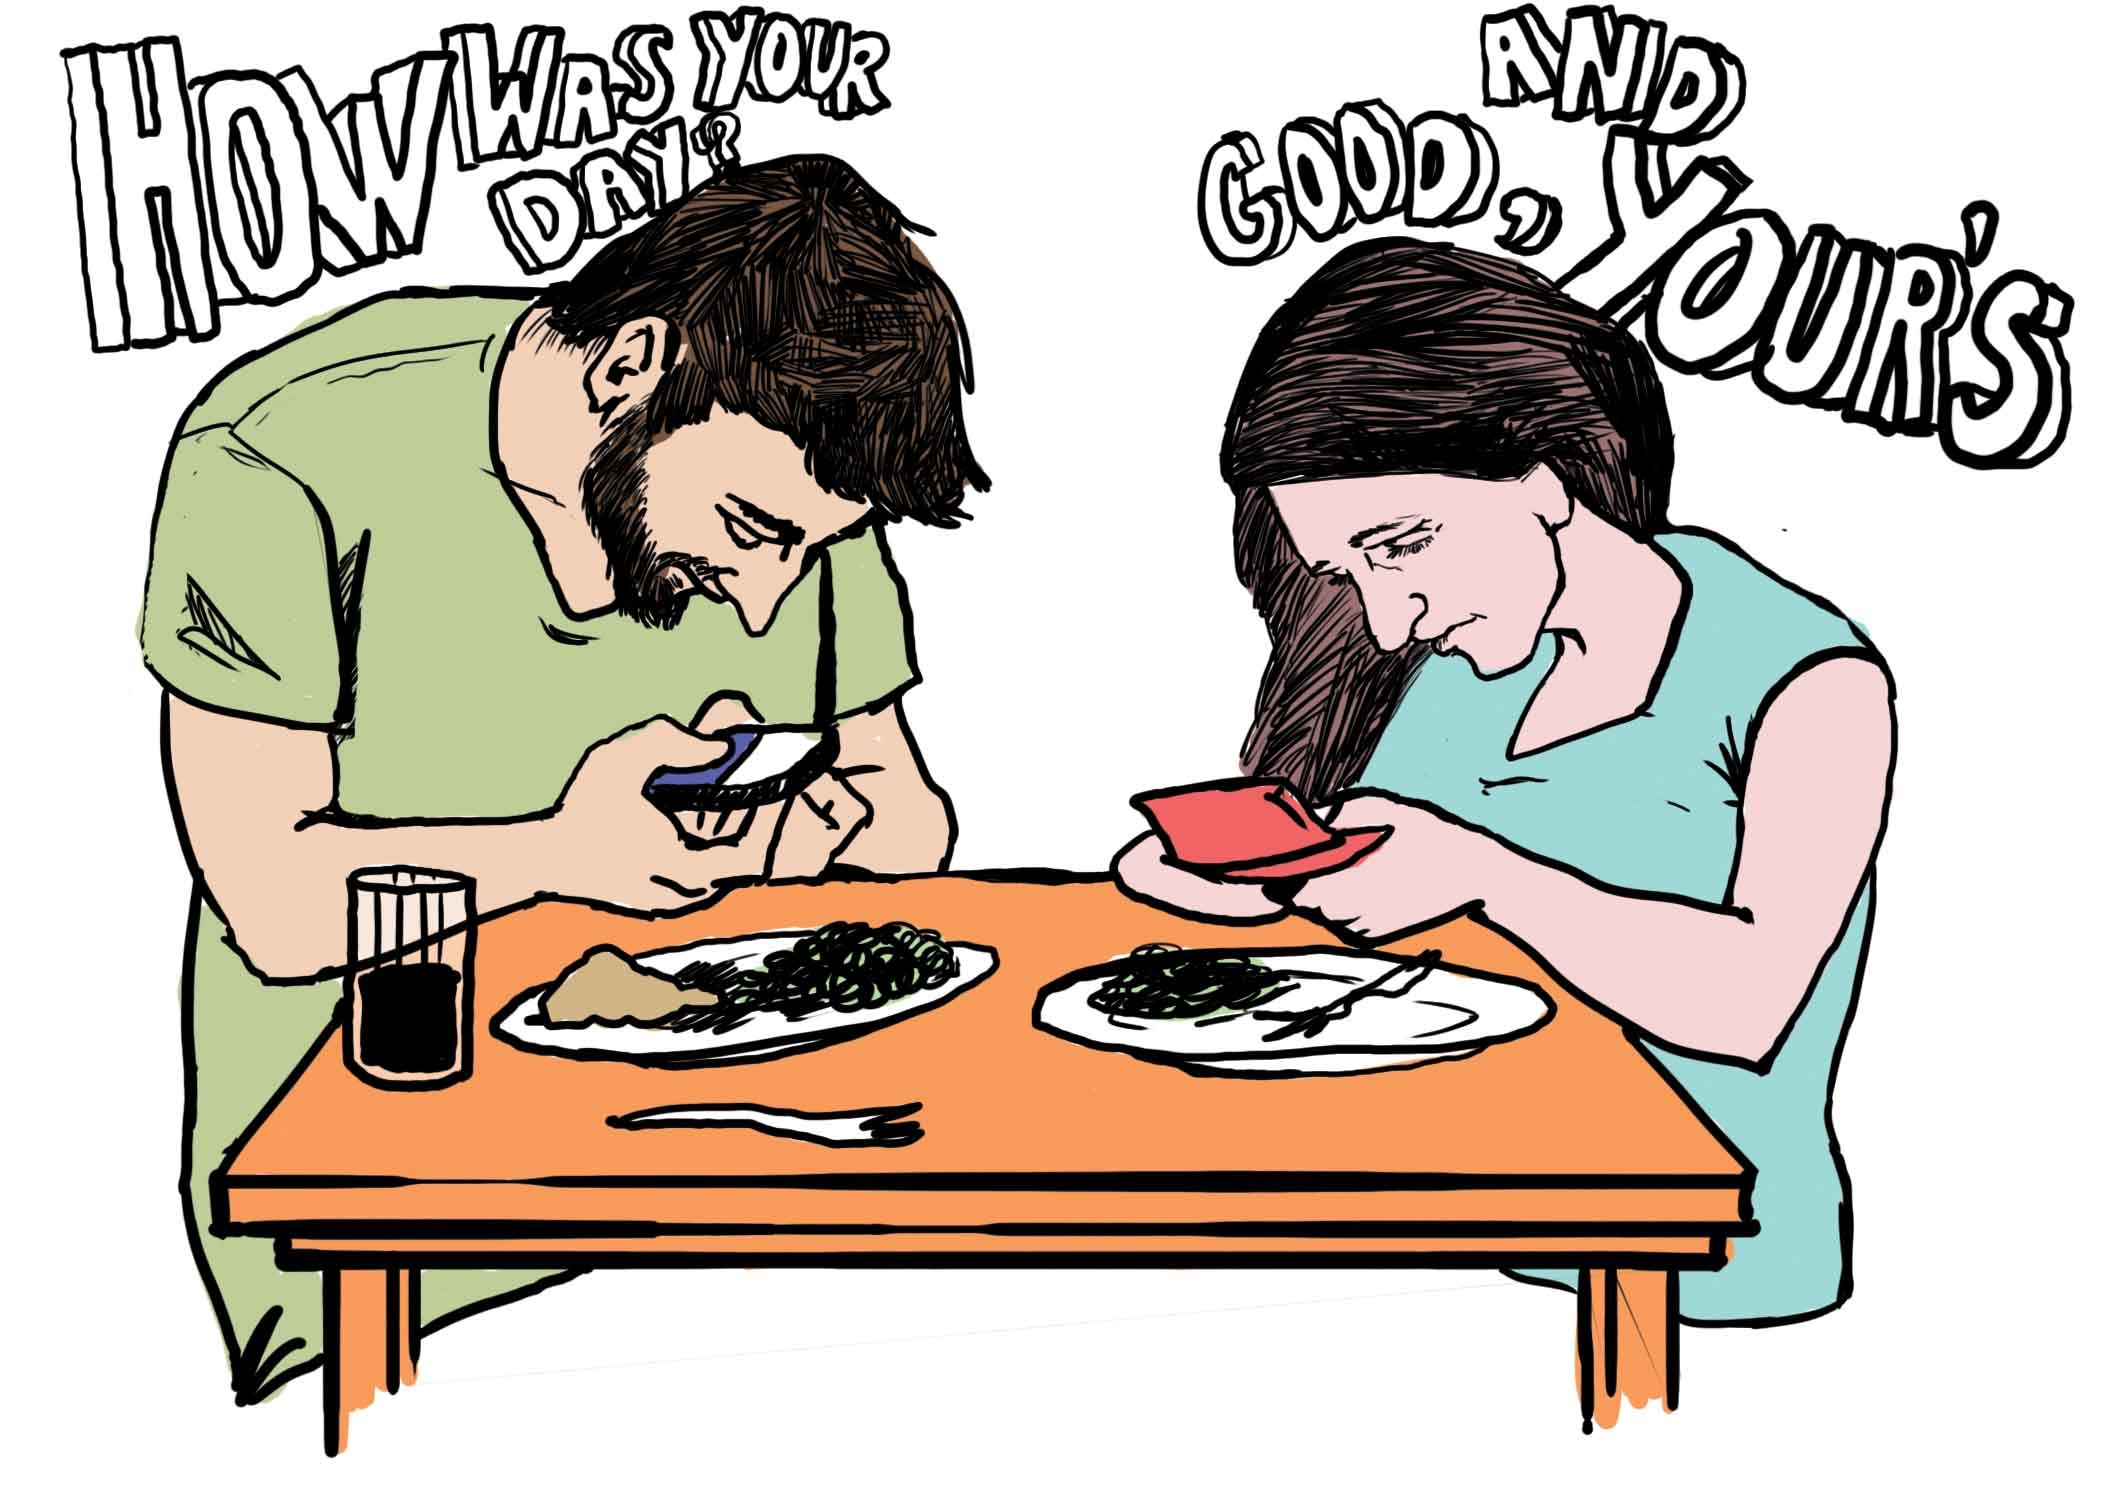 texting-at-the-table22.jpg